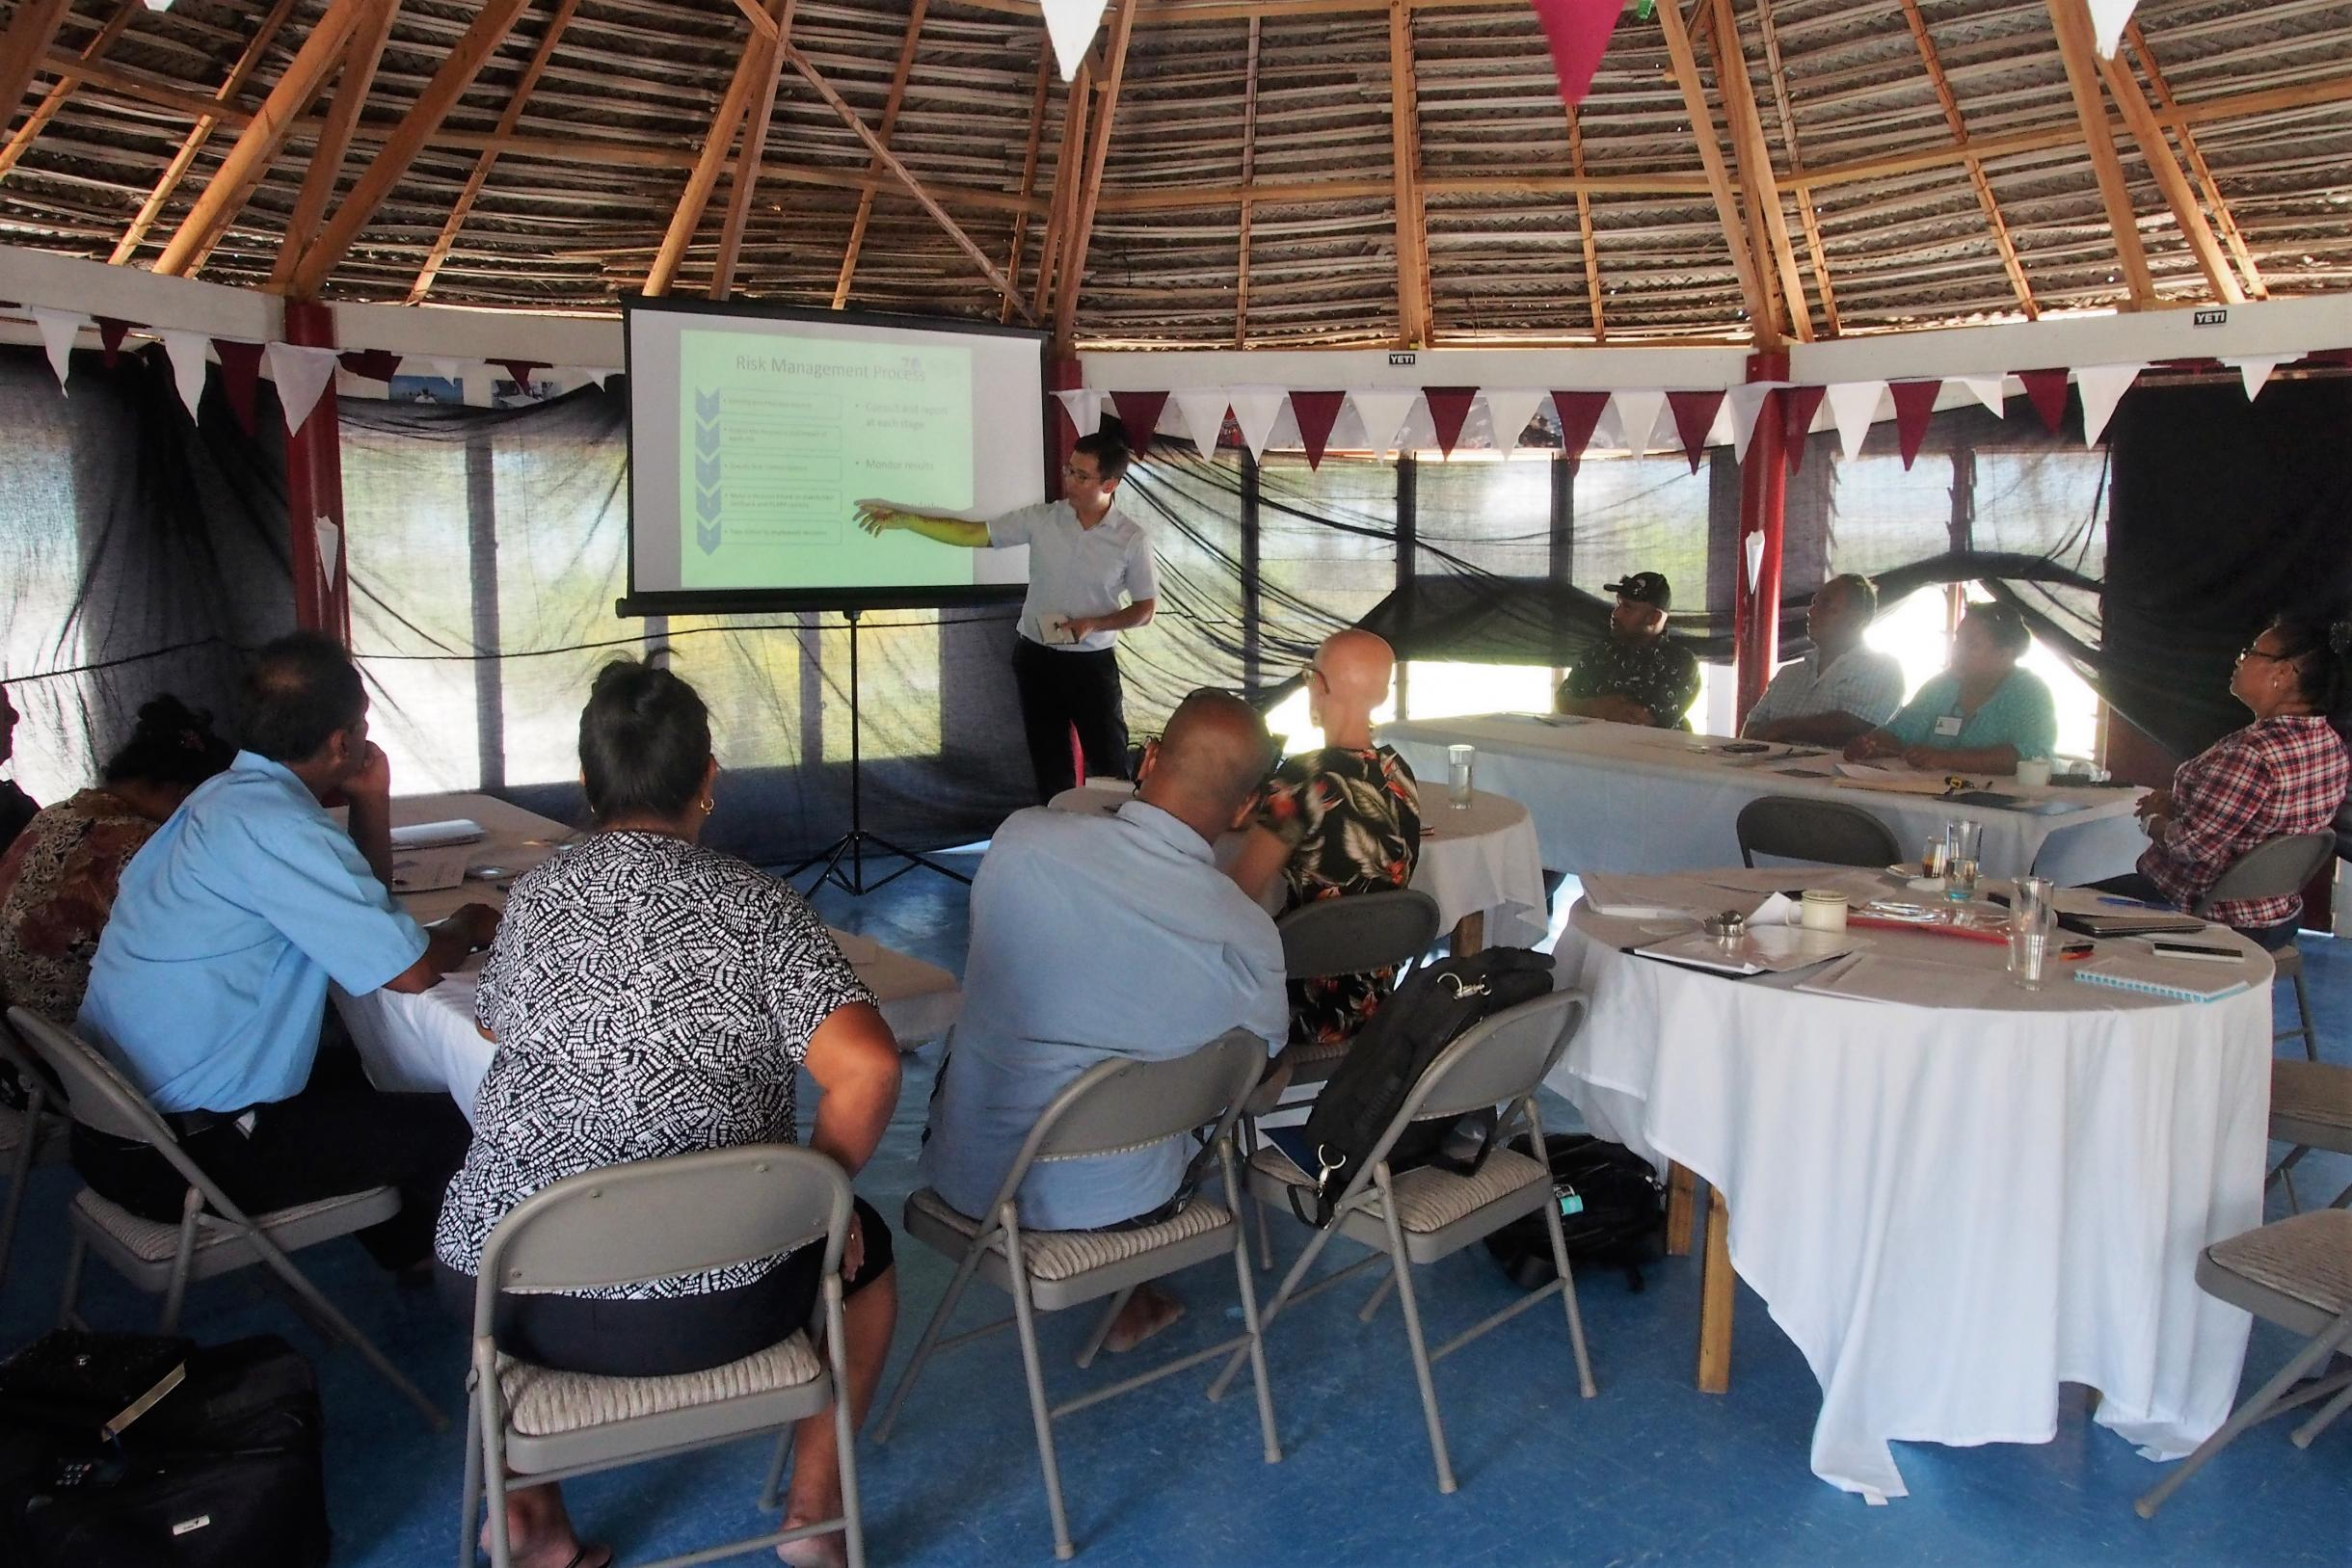 AtoN Risk assessment seminar in Kiritimati, Kiribati